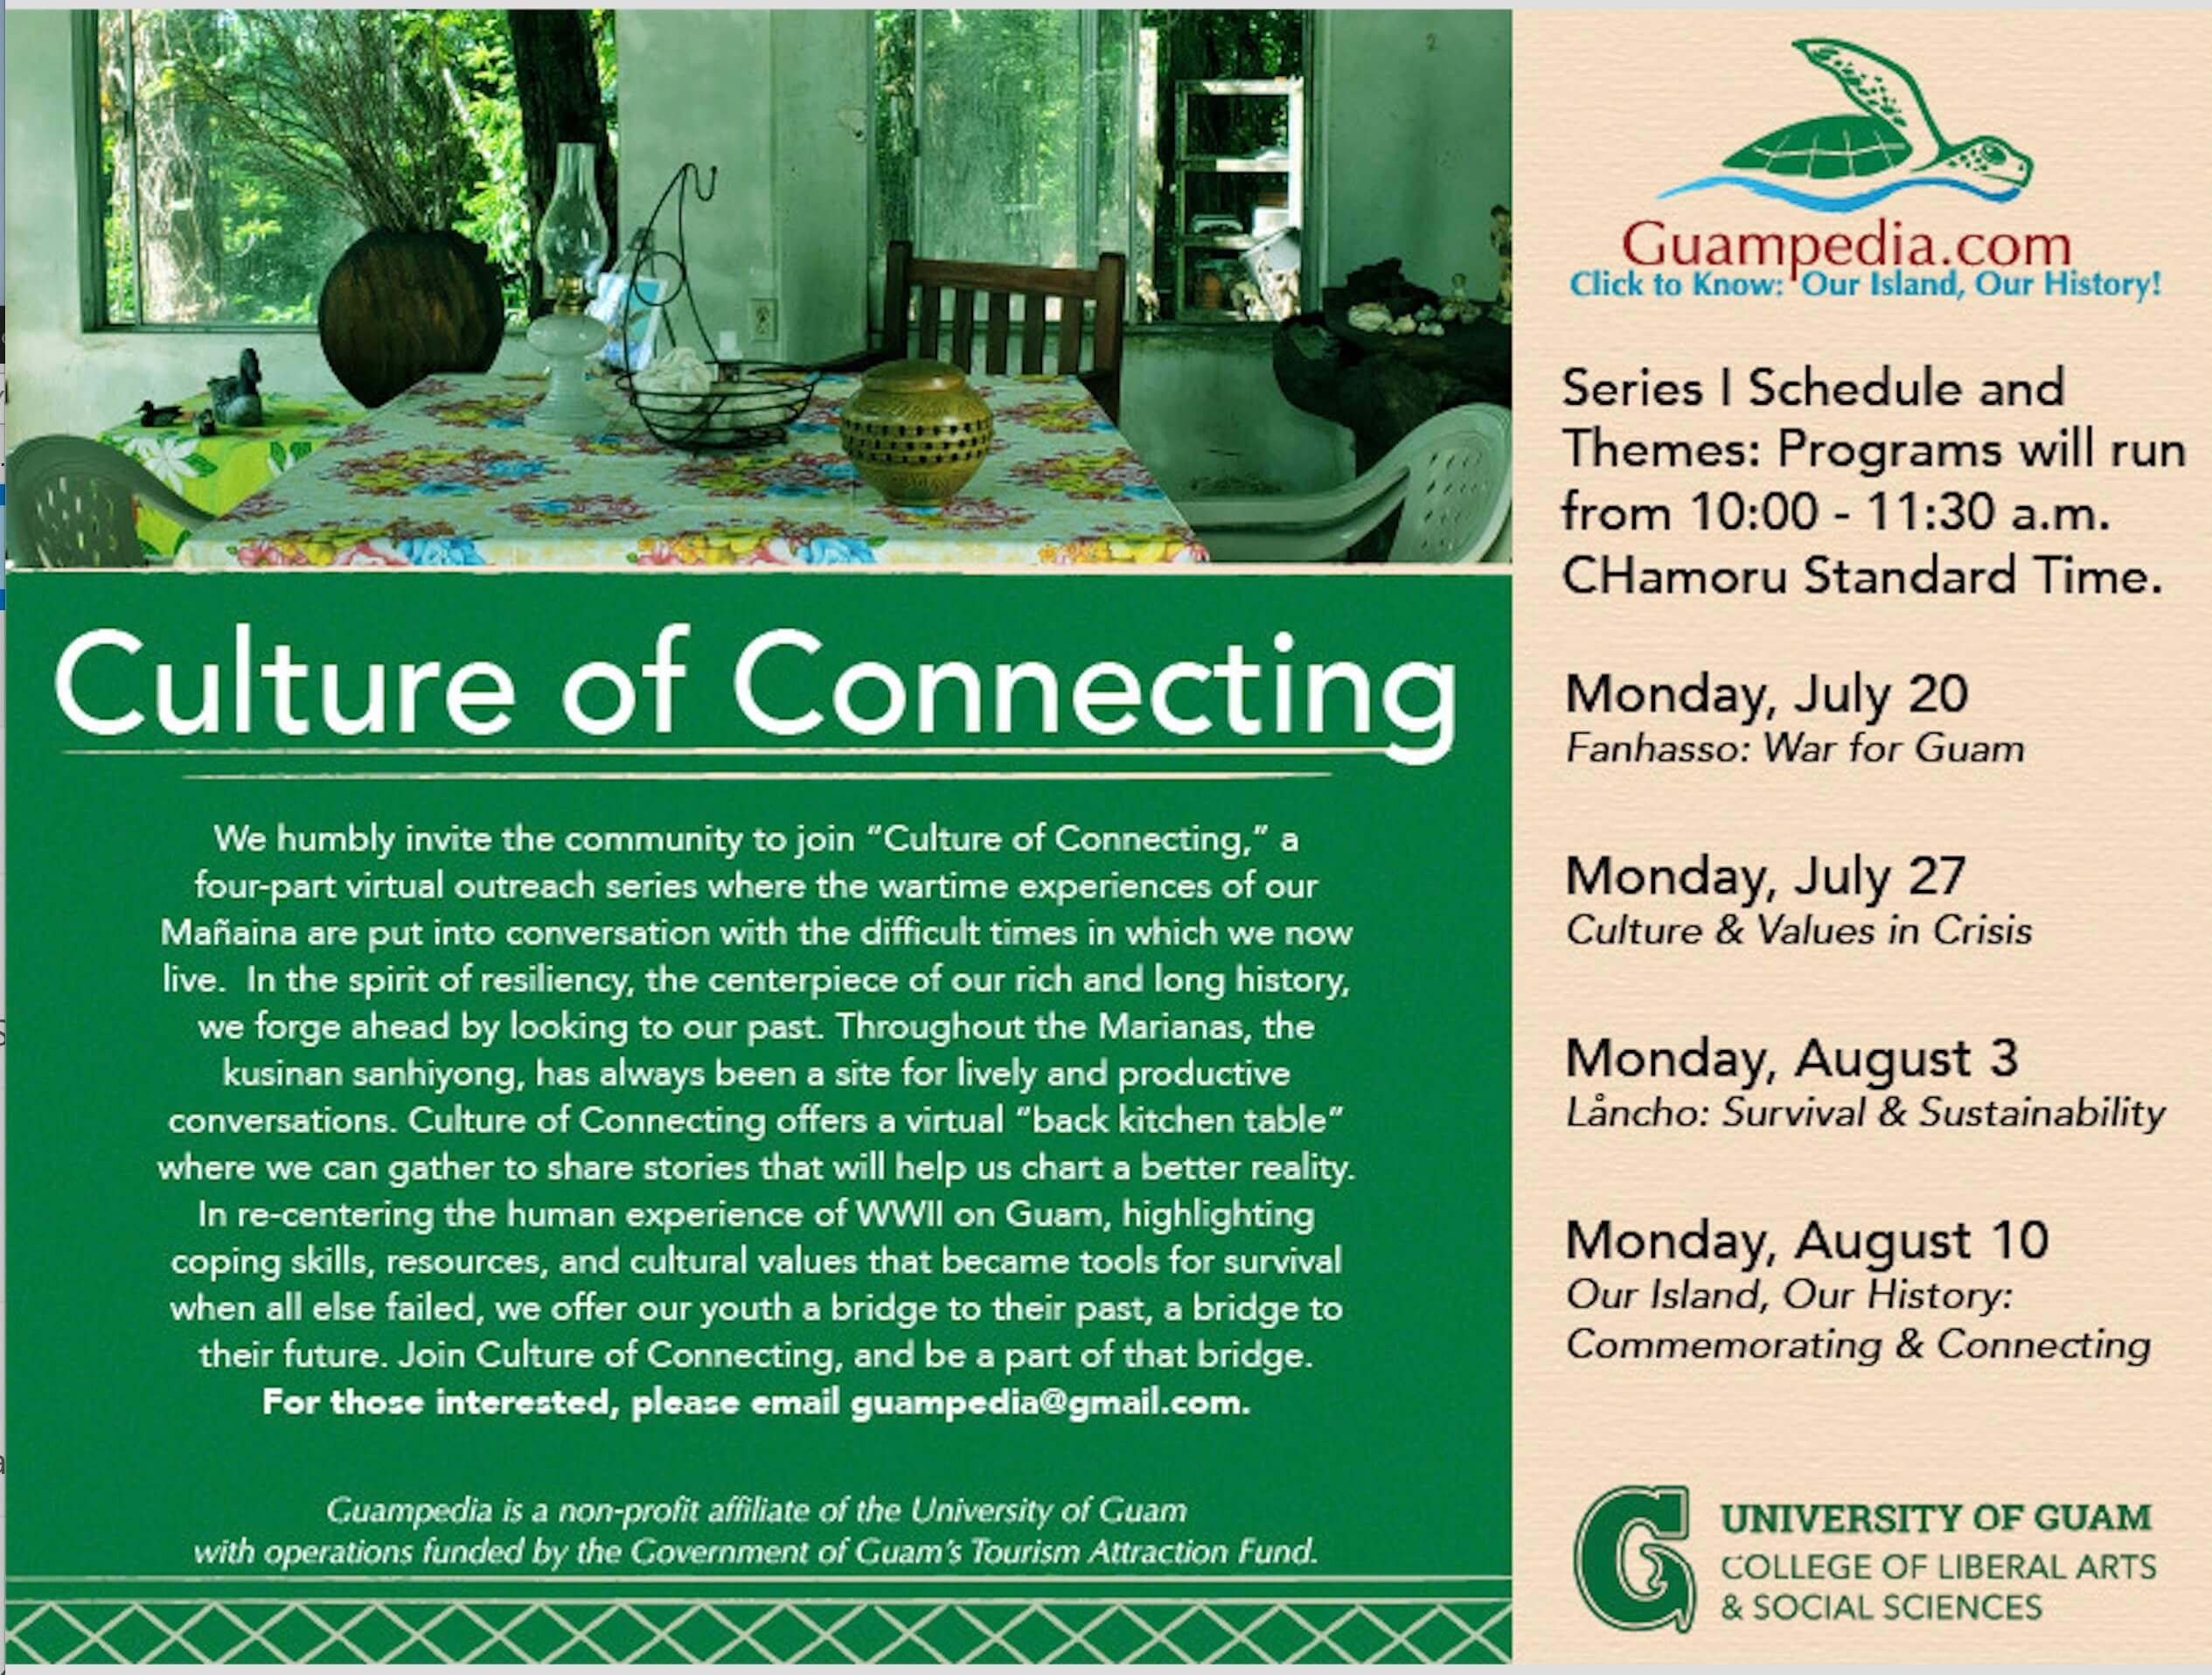 Guampedia/CLASS Liberation Day Series: Our Island, Our History: Commemorating & Connecting